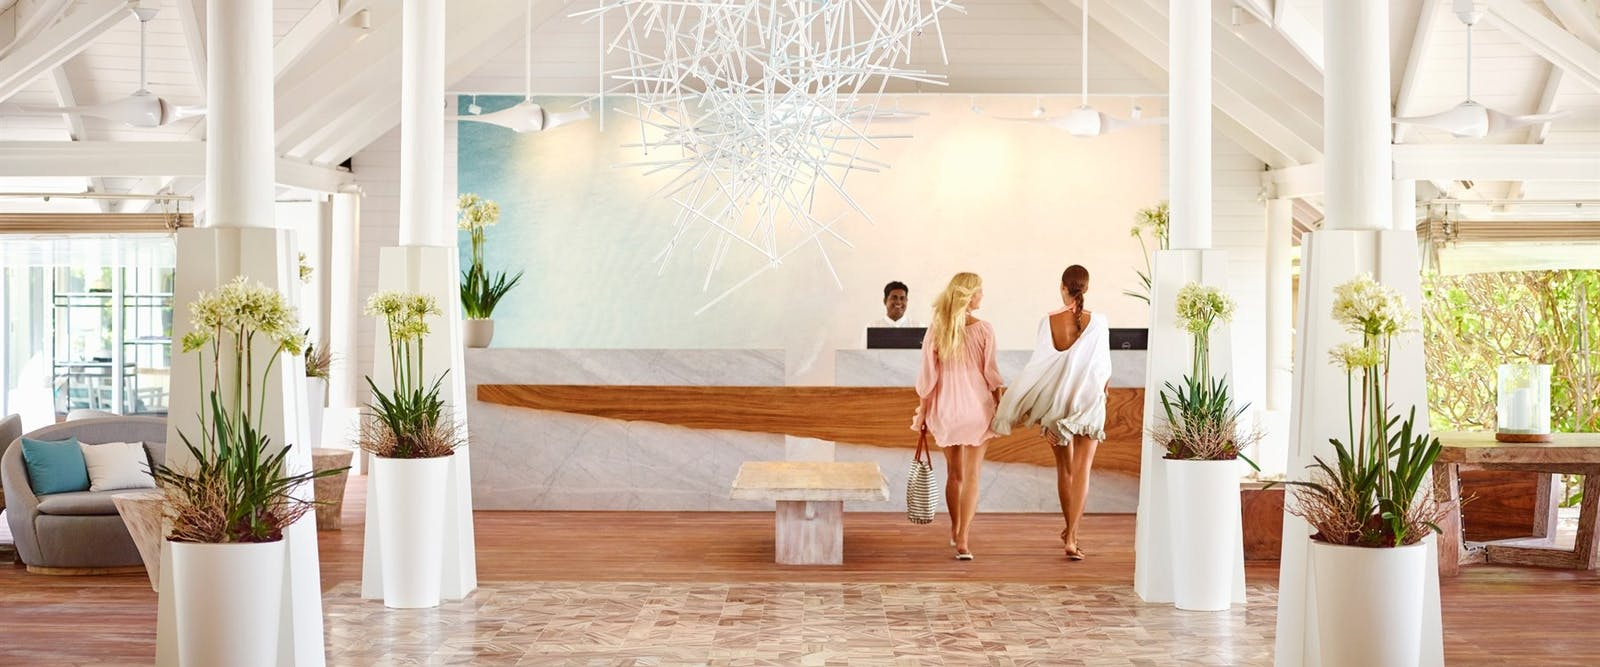 Lobby at LUX* South Ari Atoll, Maldives, Indian Ocean